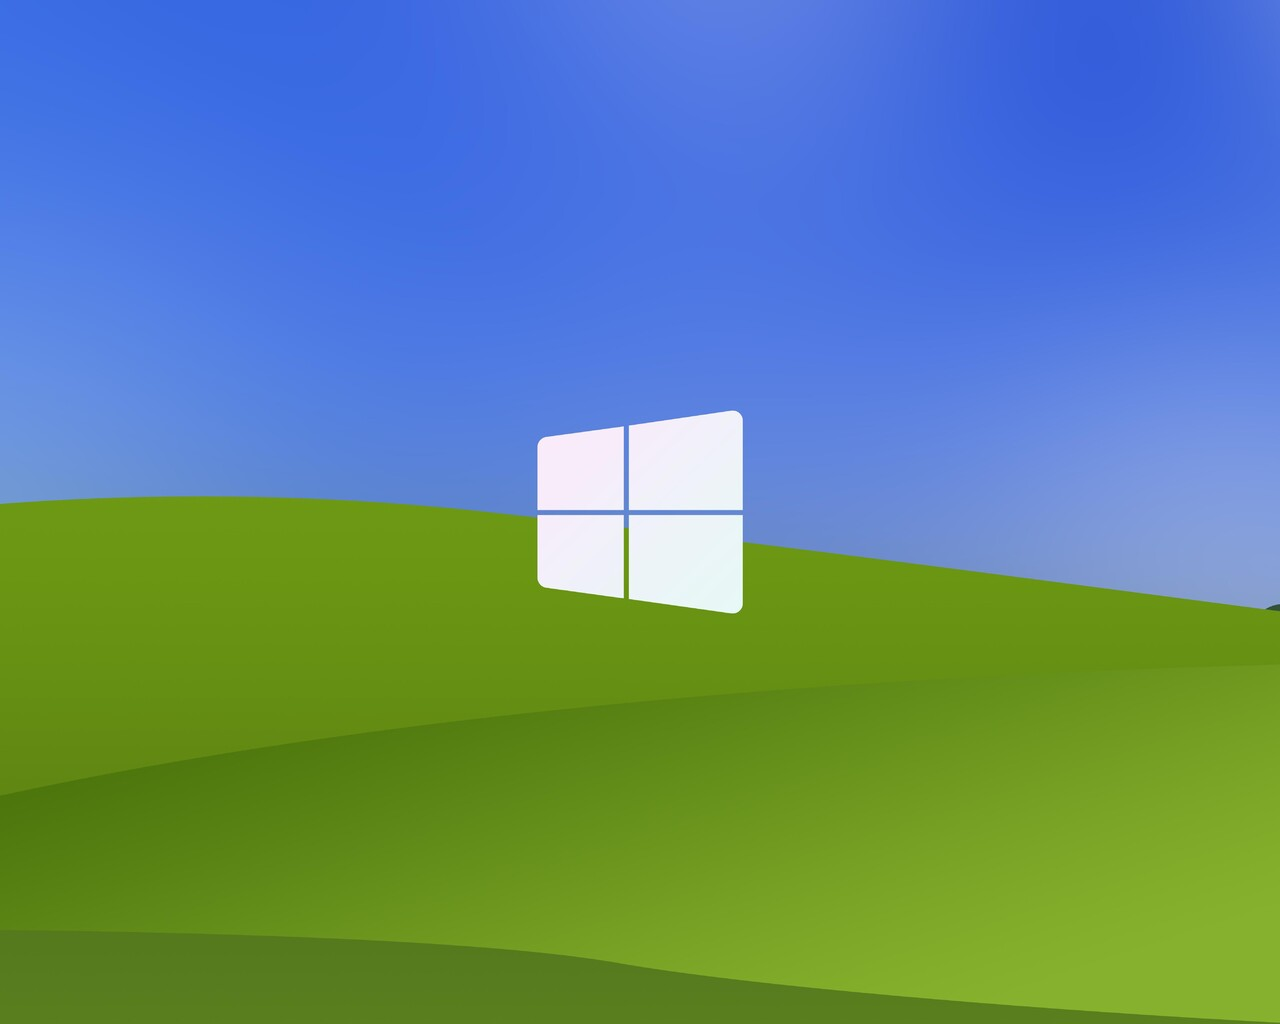 windows-xp-logo-minimalism-8k-vc.jpg